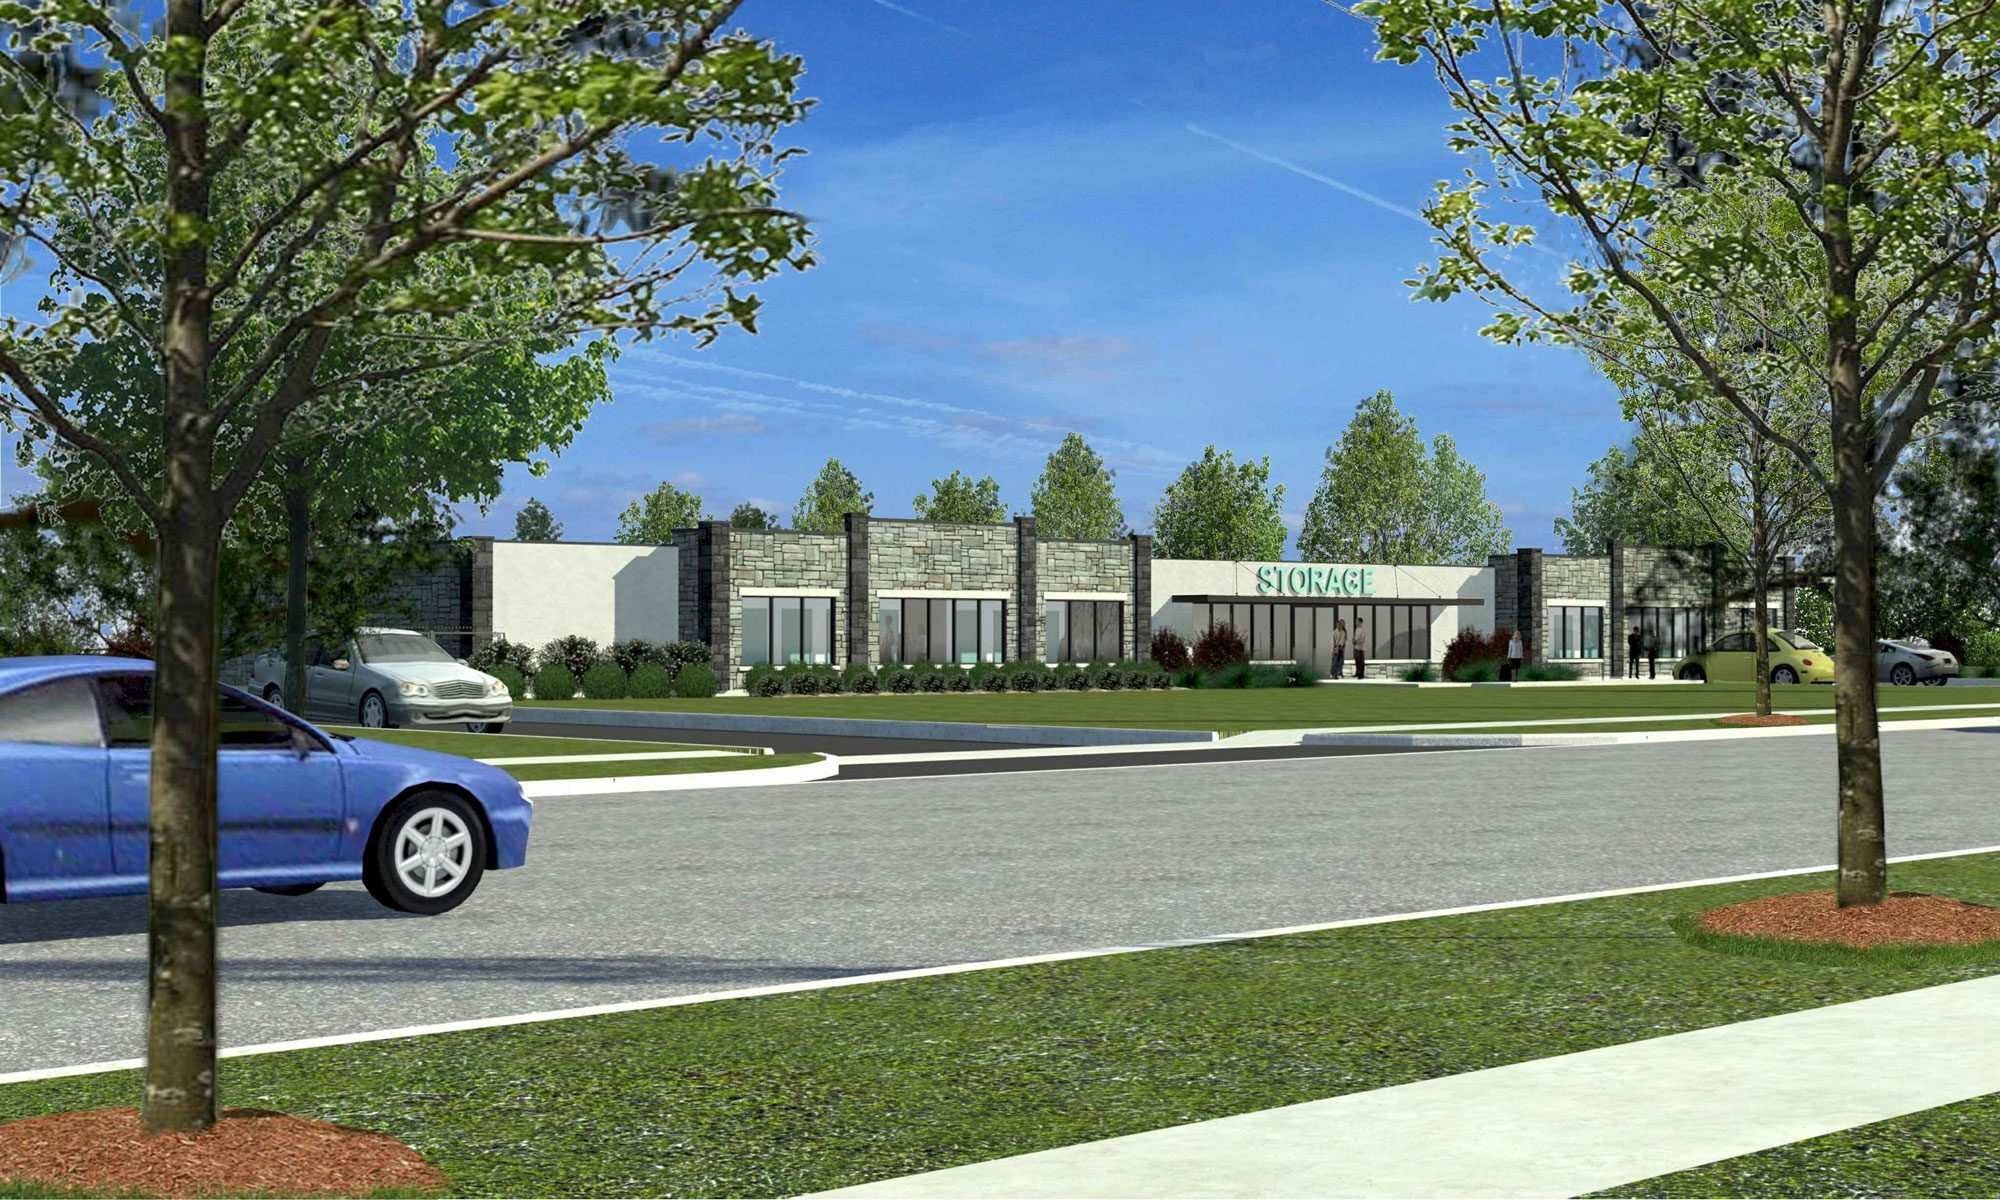 High-quality rendering of the future UltraStor Caledon location.